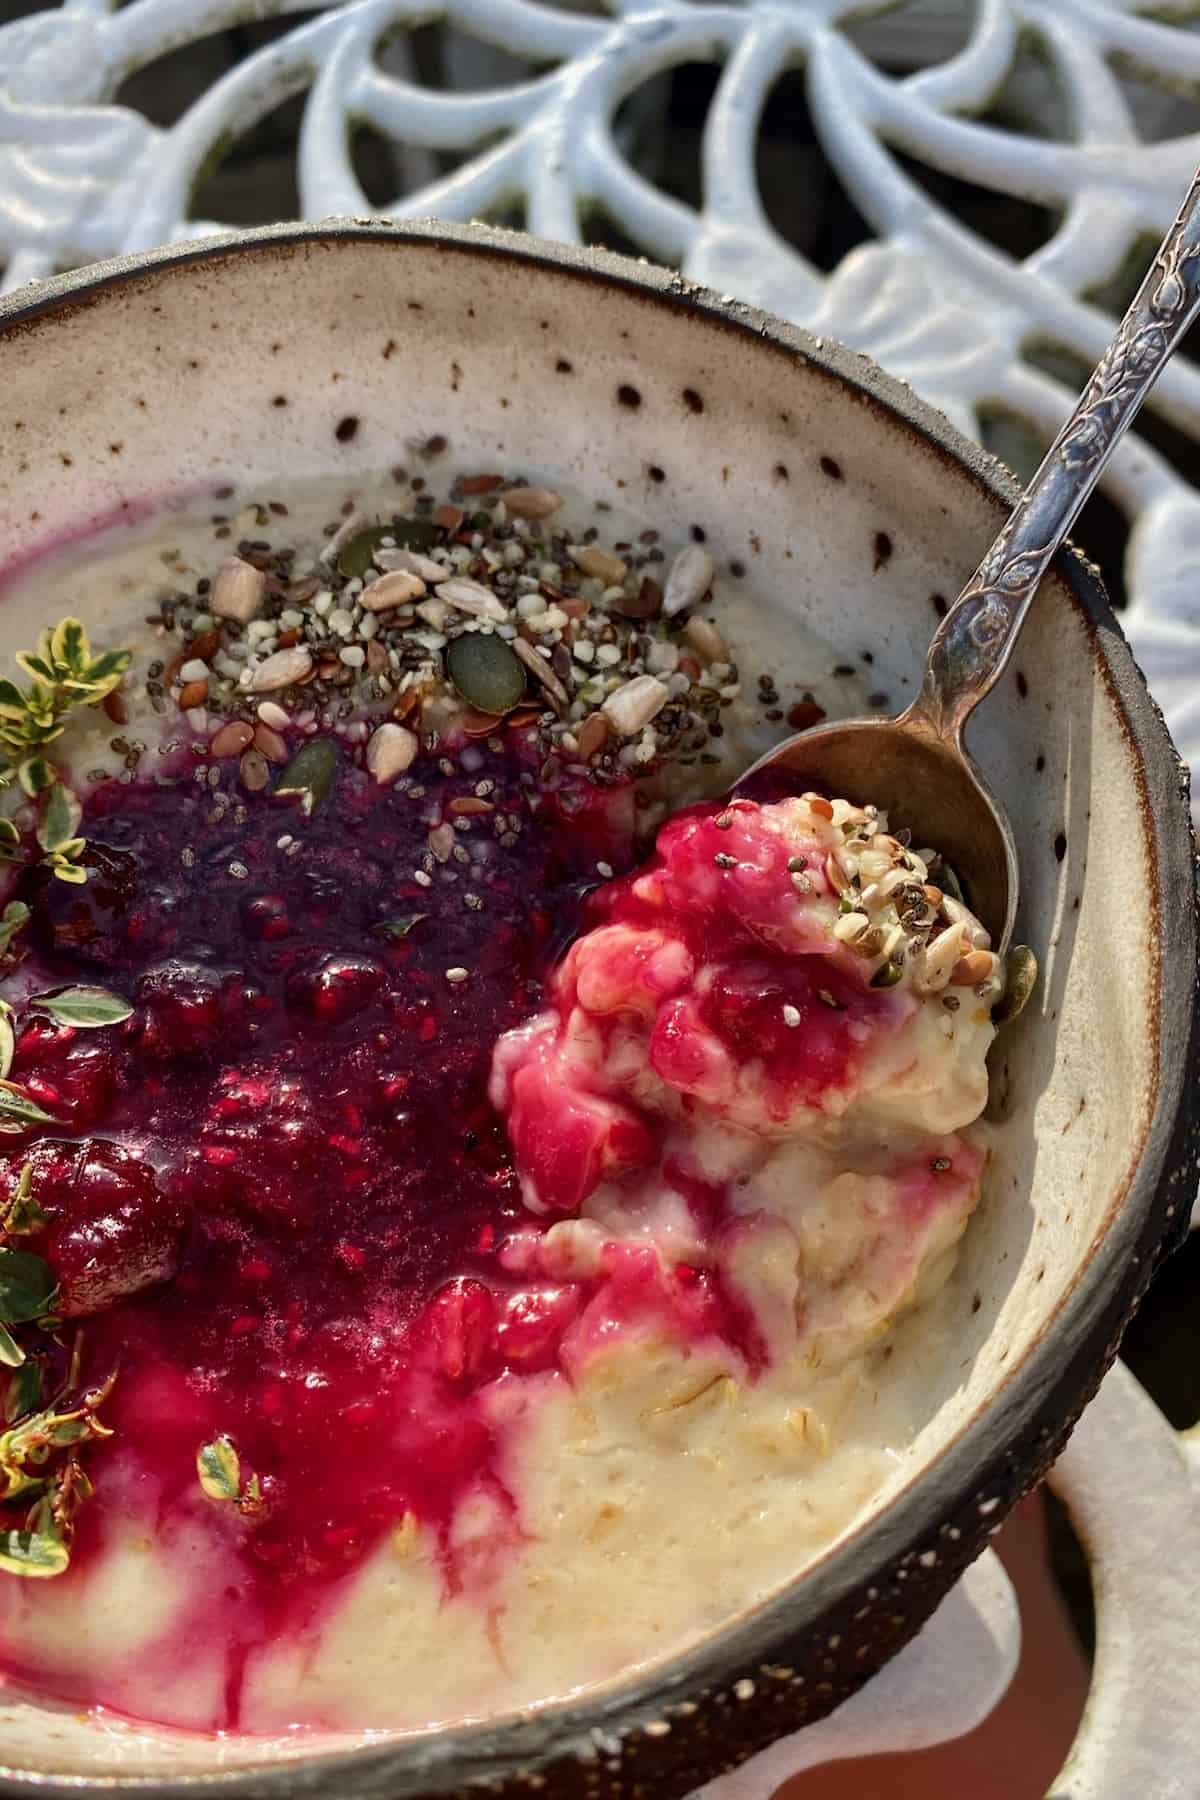 A bowl with a spoon and berry oatmeal topped with seeds and herbs